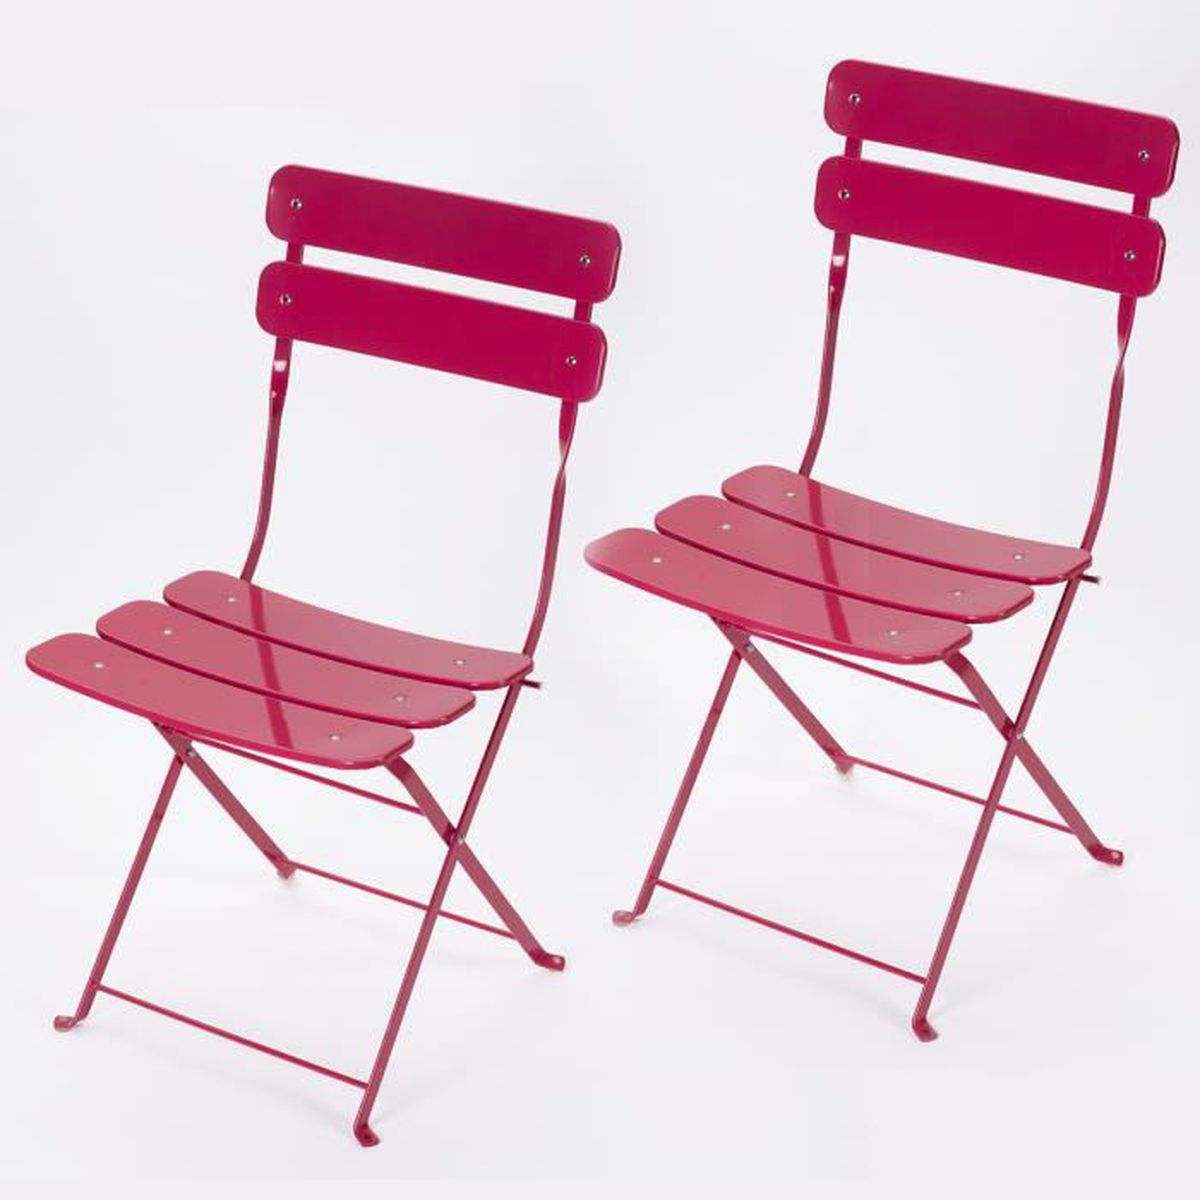 Lot de 2 chaises pliantes ext rieur en m tal rose hesp ride rose achat ve - Lot de chaises pliantes ...